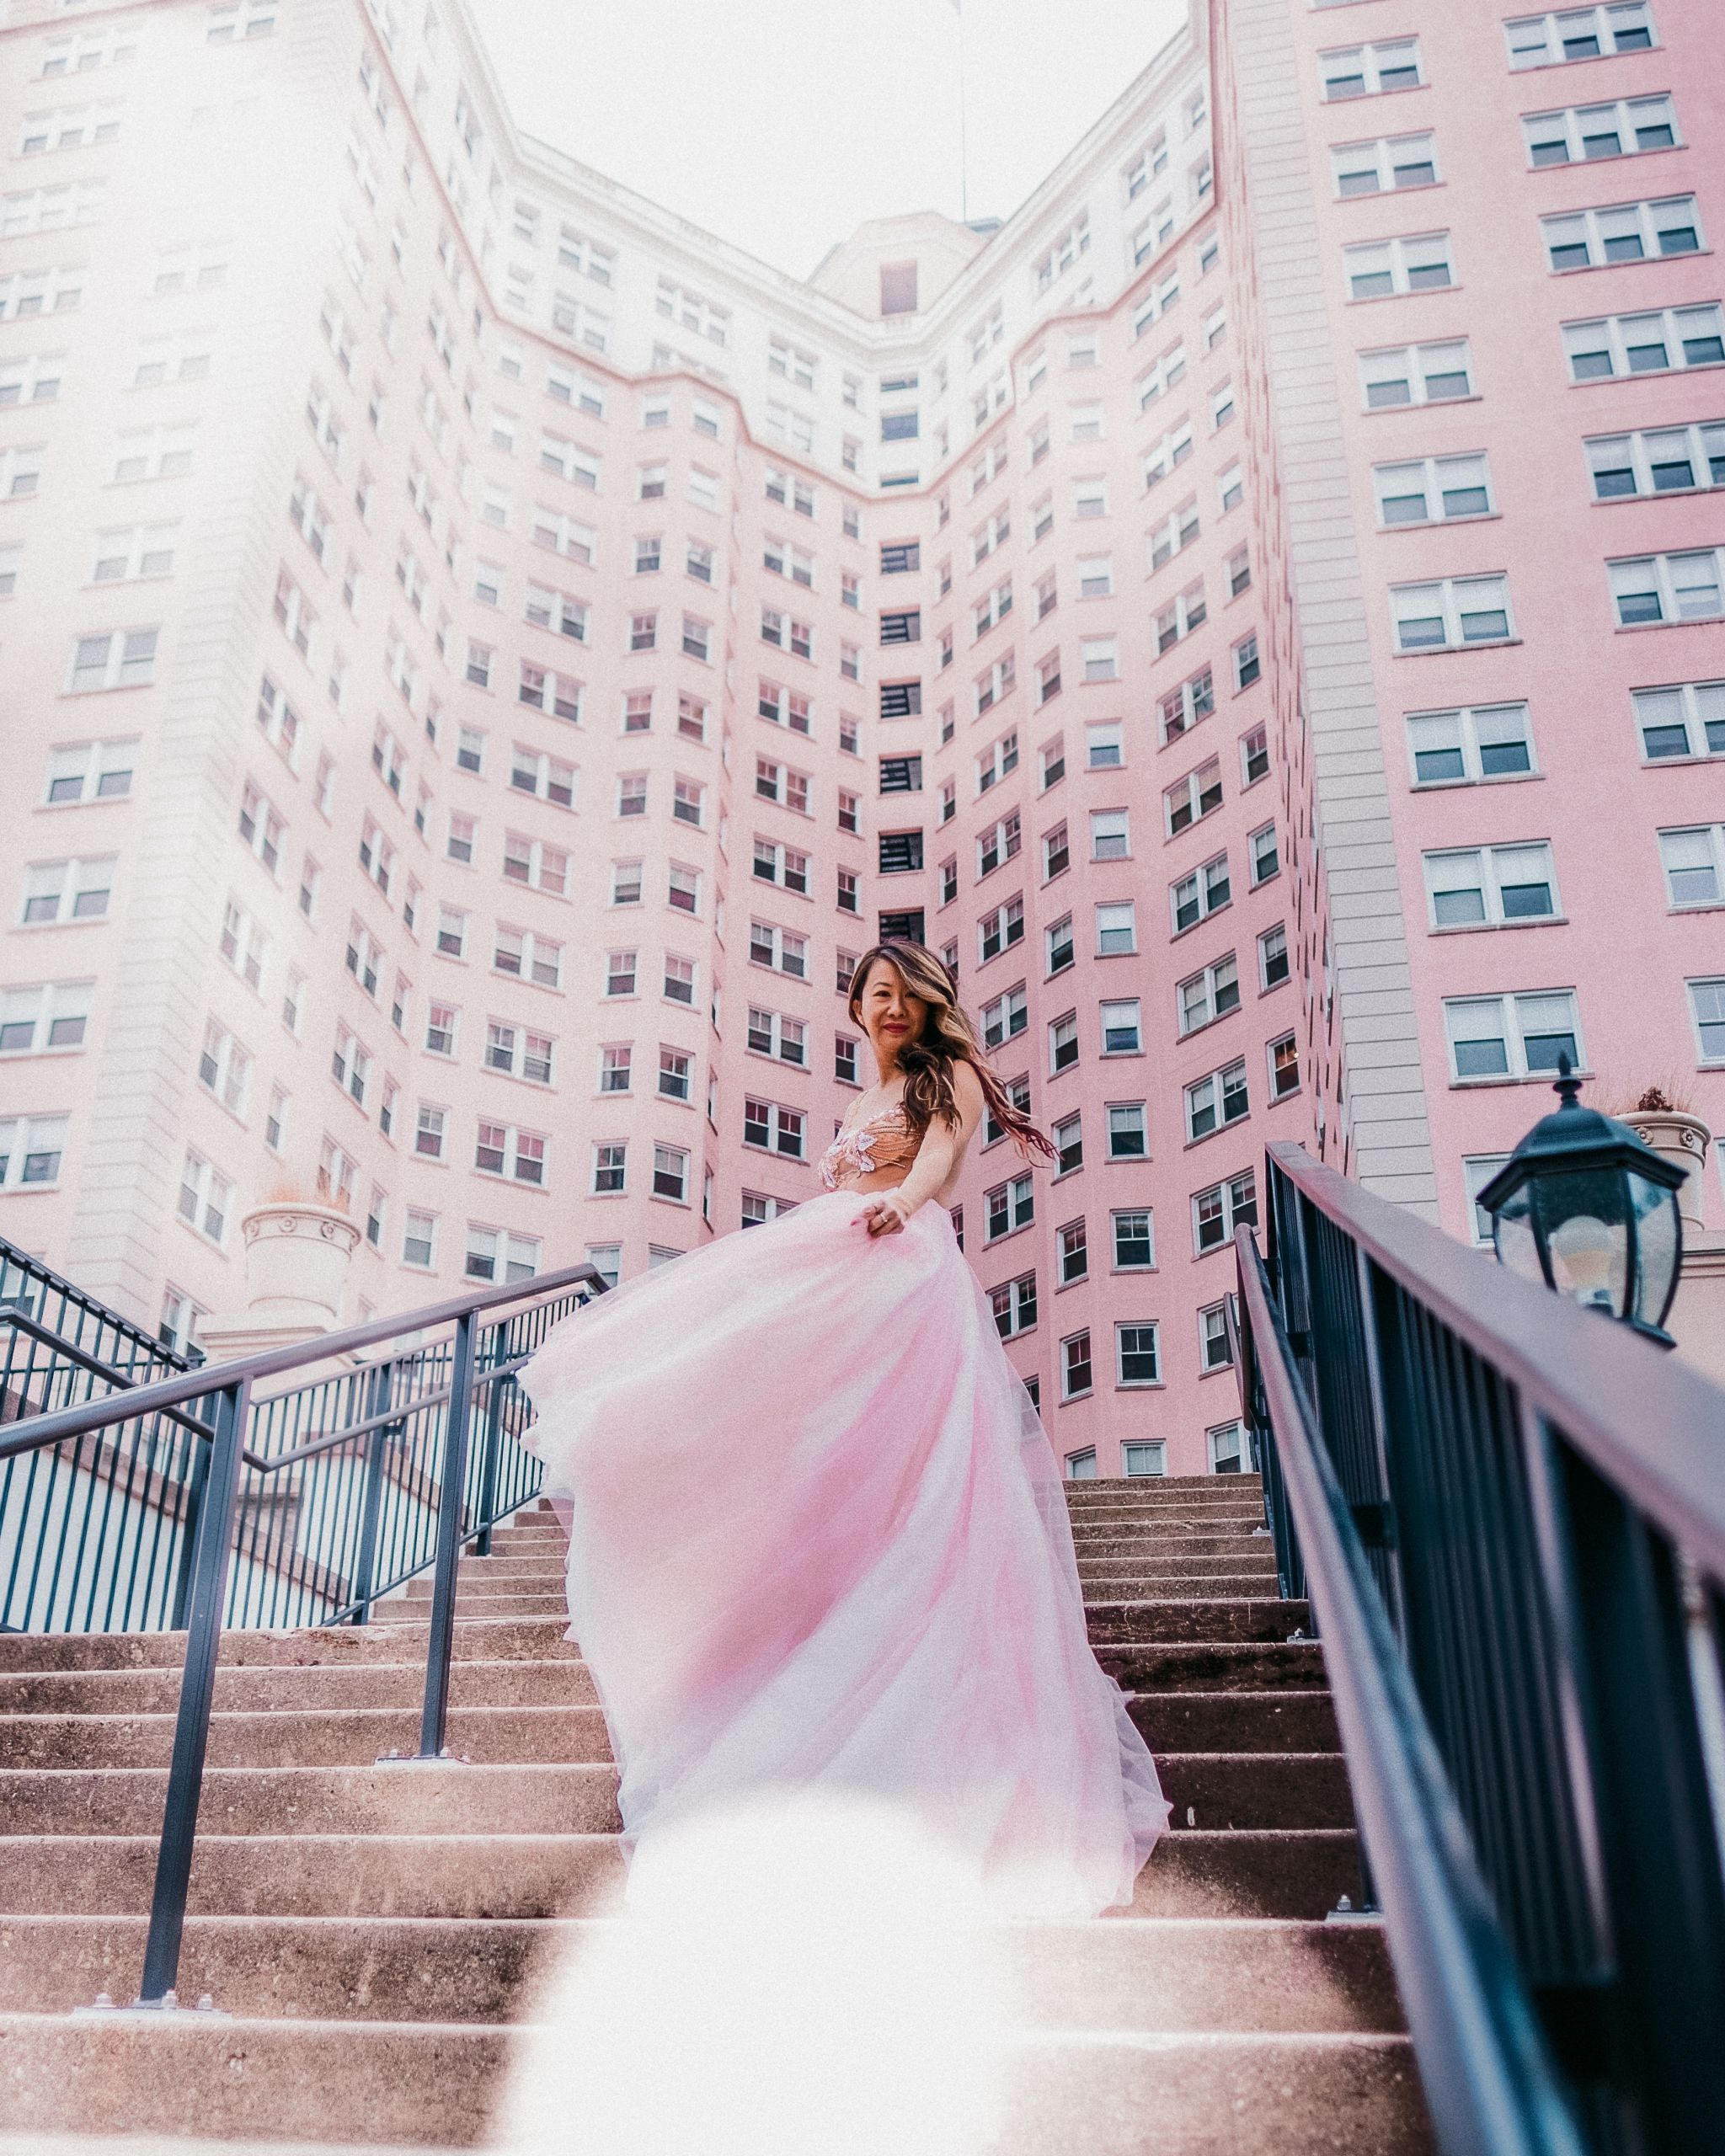 Wedding Gowns Chicago: Viero Bridal And How I Feel About Marriage